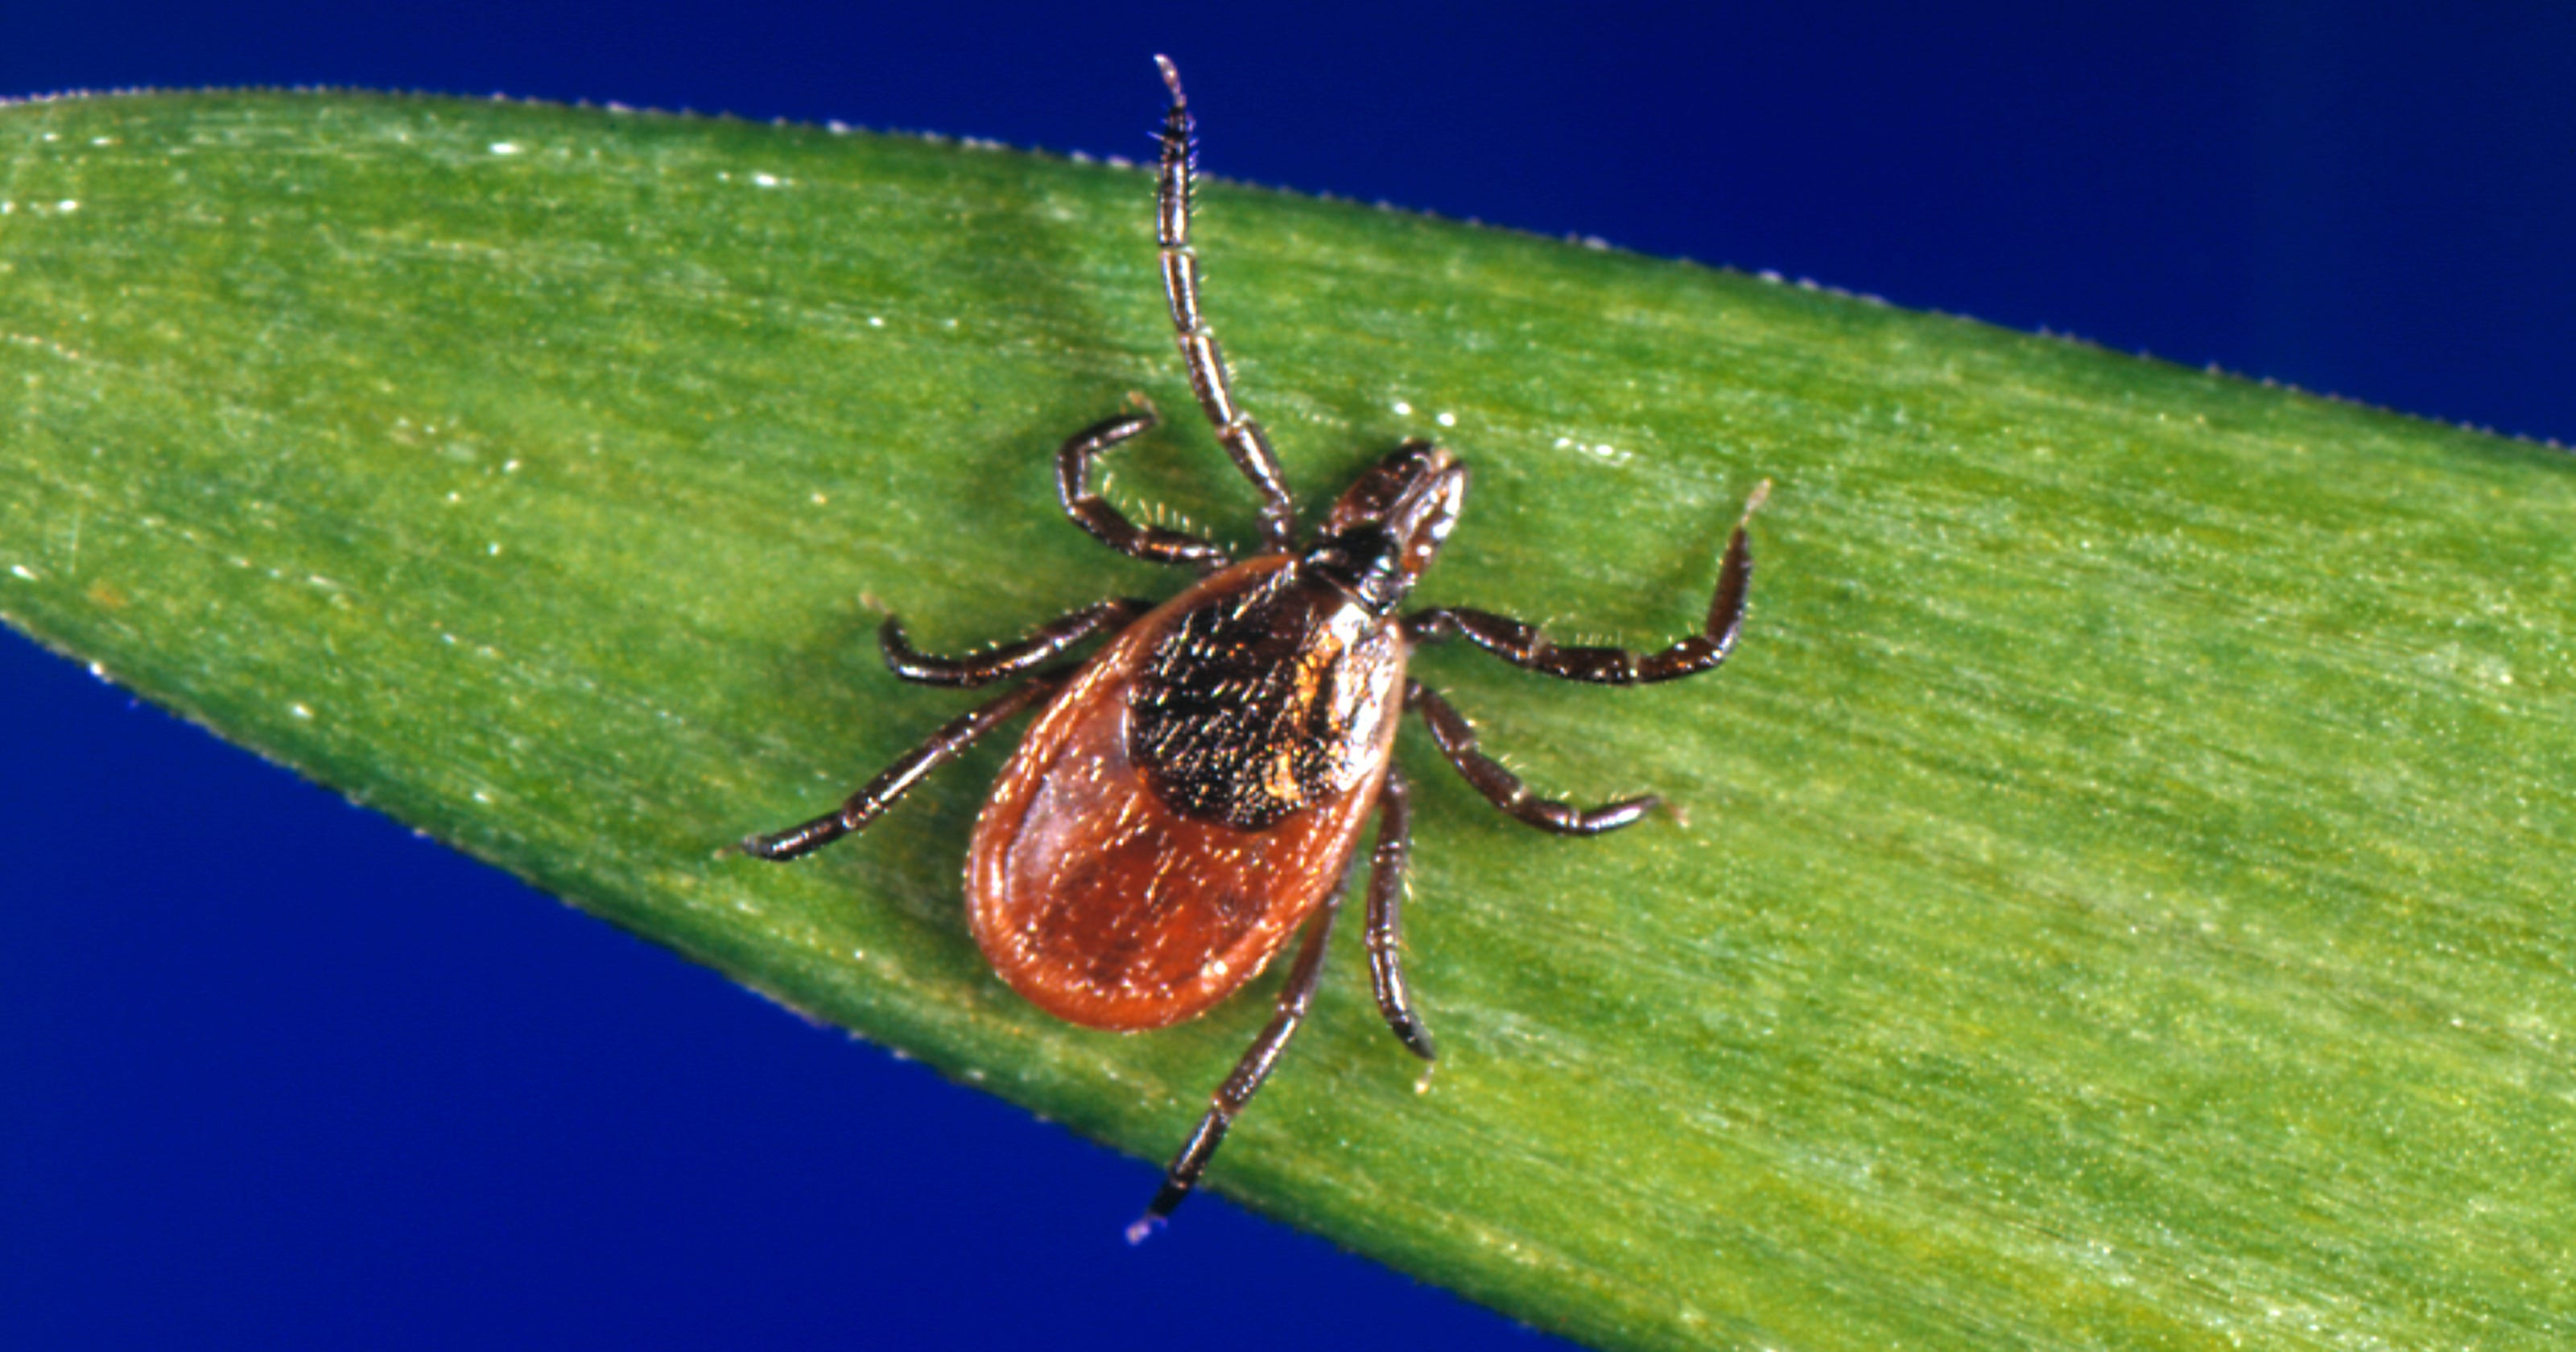 Tick Season What To Know About Ticks Diseases And How To Remove Them